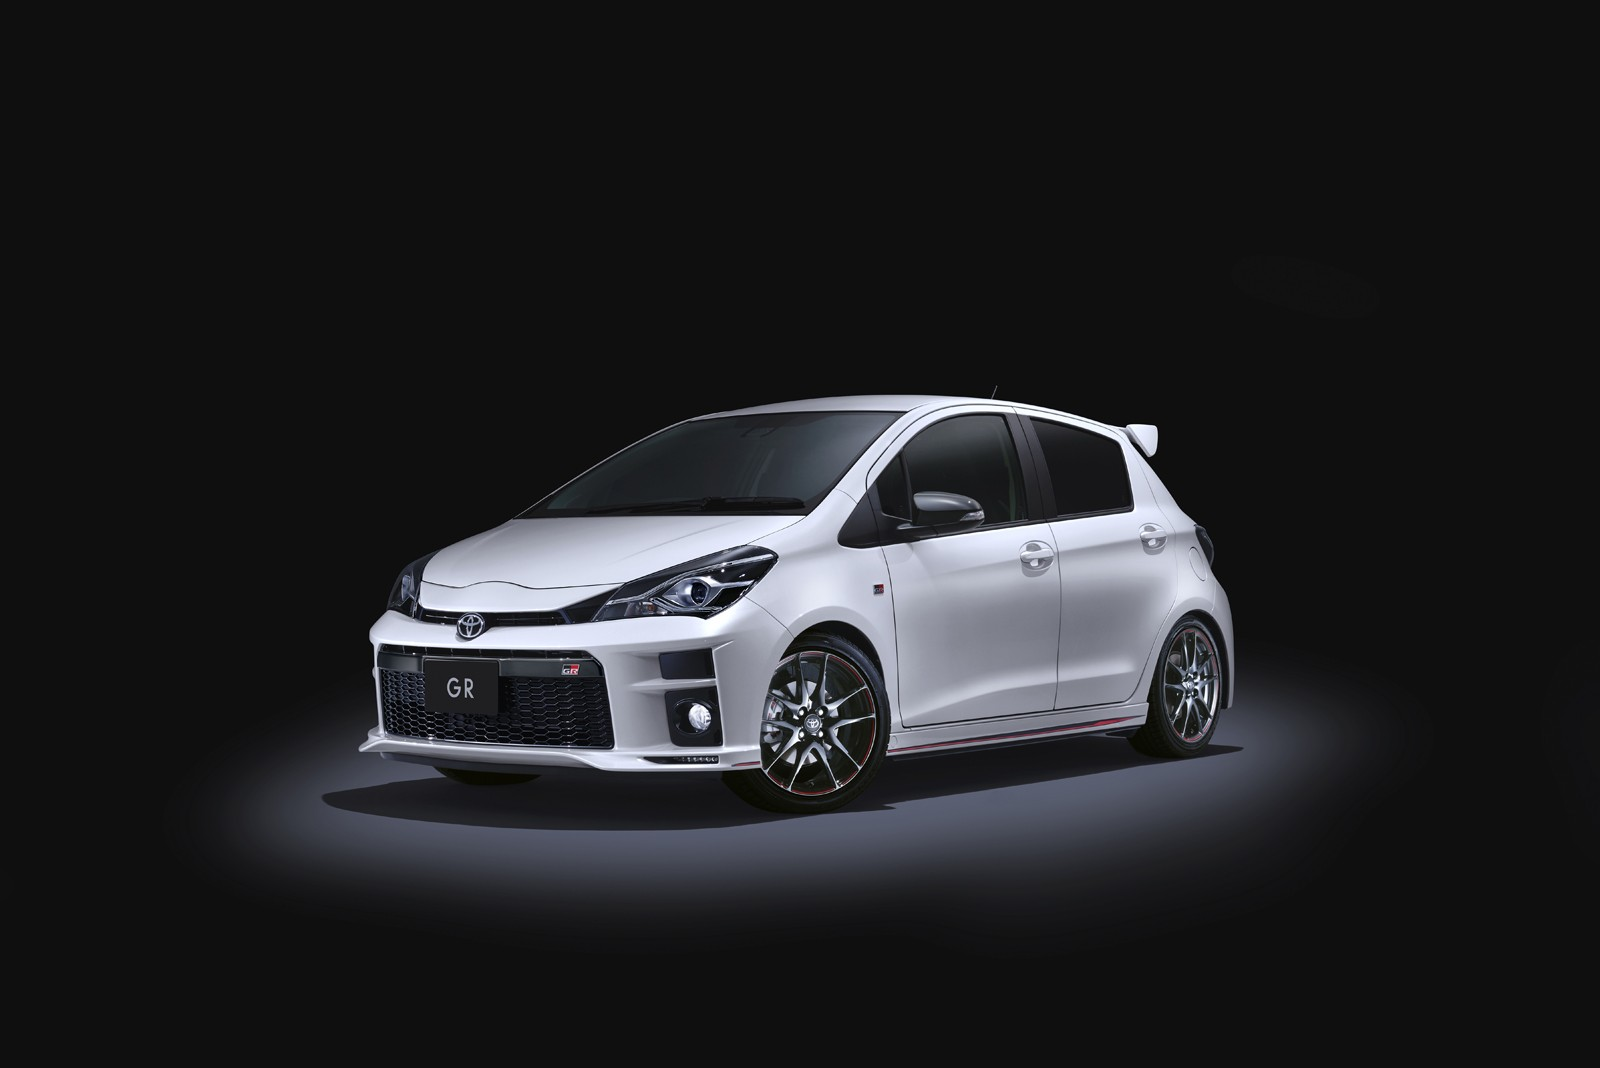 Toyota Gr Sports Car Lineup Goes Official In Japan Rest Of The